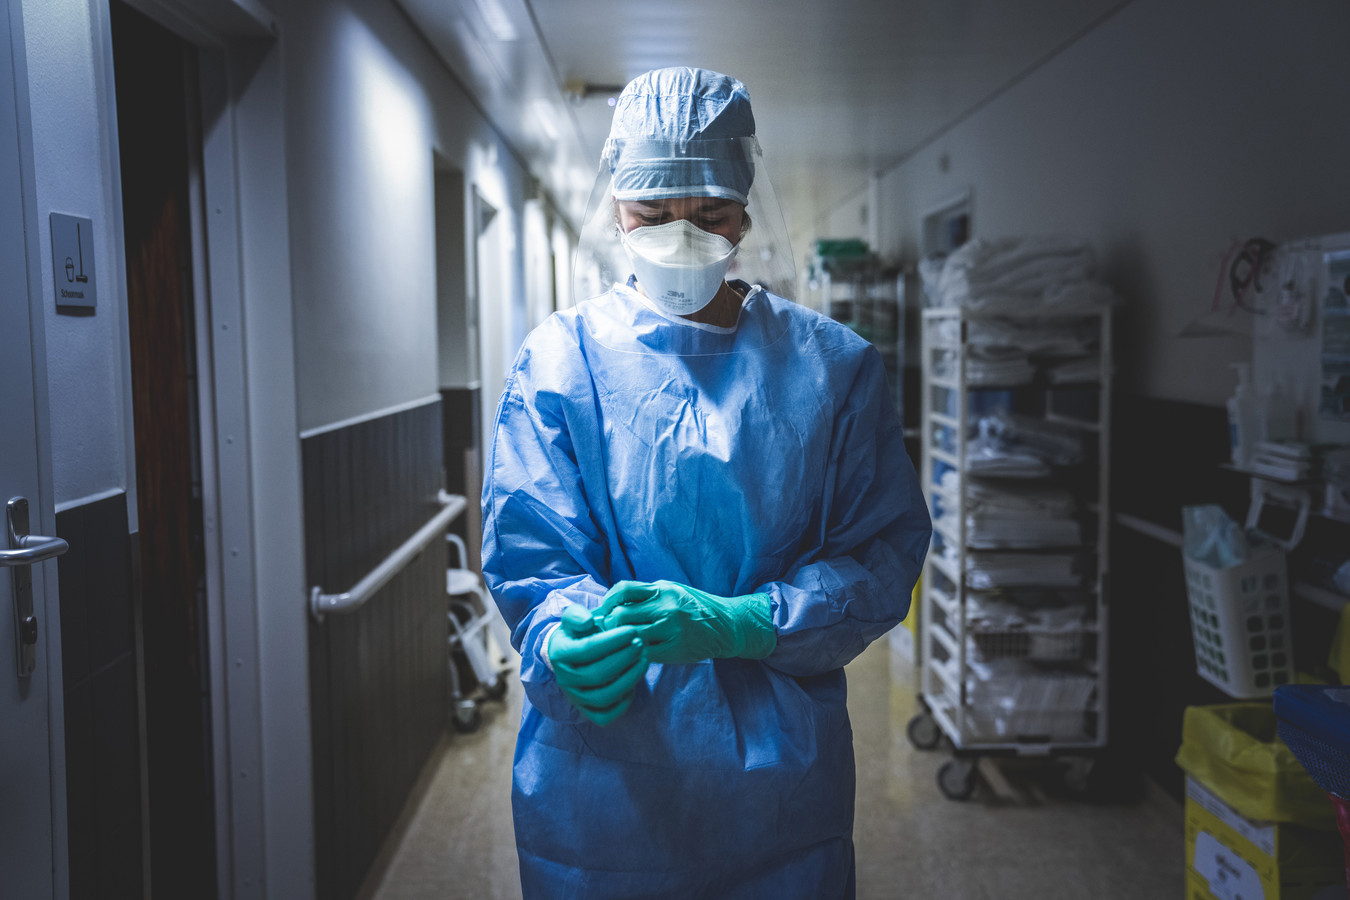 The new European MDR legislation (Medical Device Regulation) enters into full effect as of 26 May 2020.Healthcare organisations have major concerns...